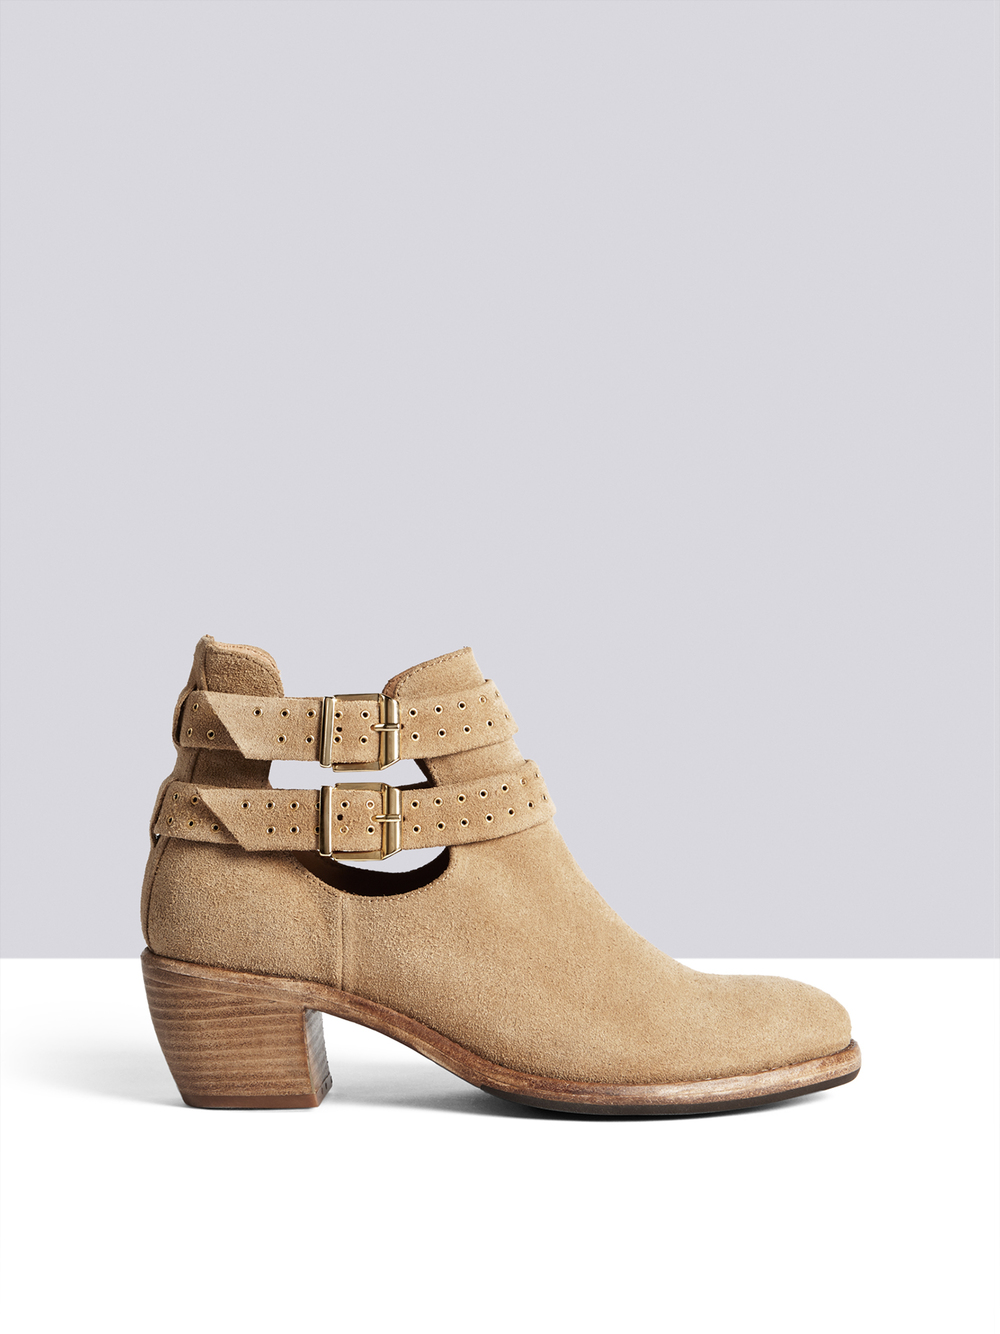 TED & MUFFY - EAGLE ANKLE BOOTS £180